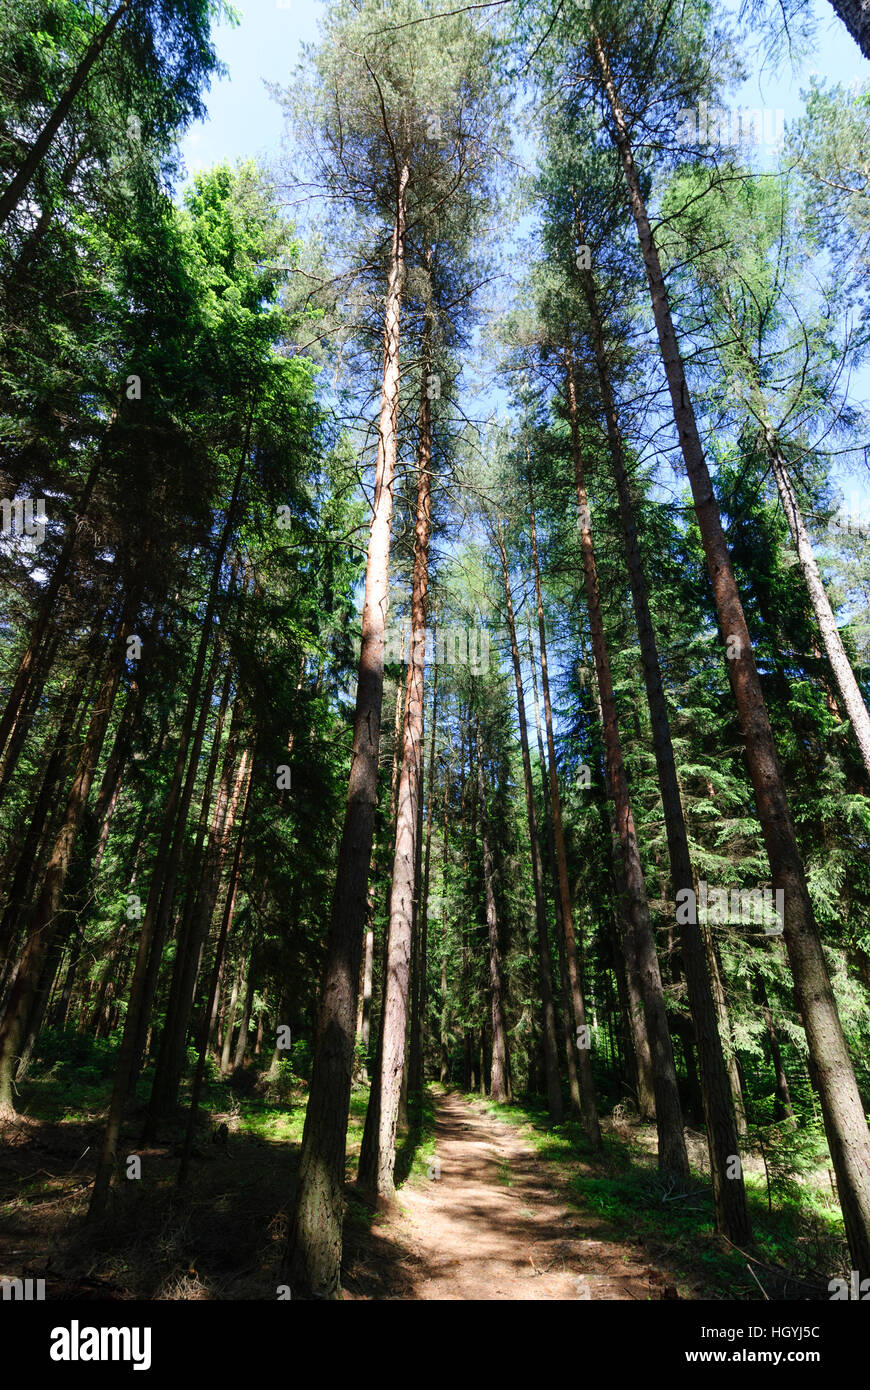 Bad Brambach: Spruces in the Elstergebirge, Vogtland, Sachsen, Saxony, Germany - Stock Image